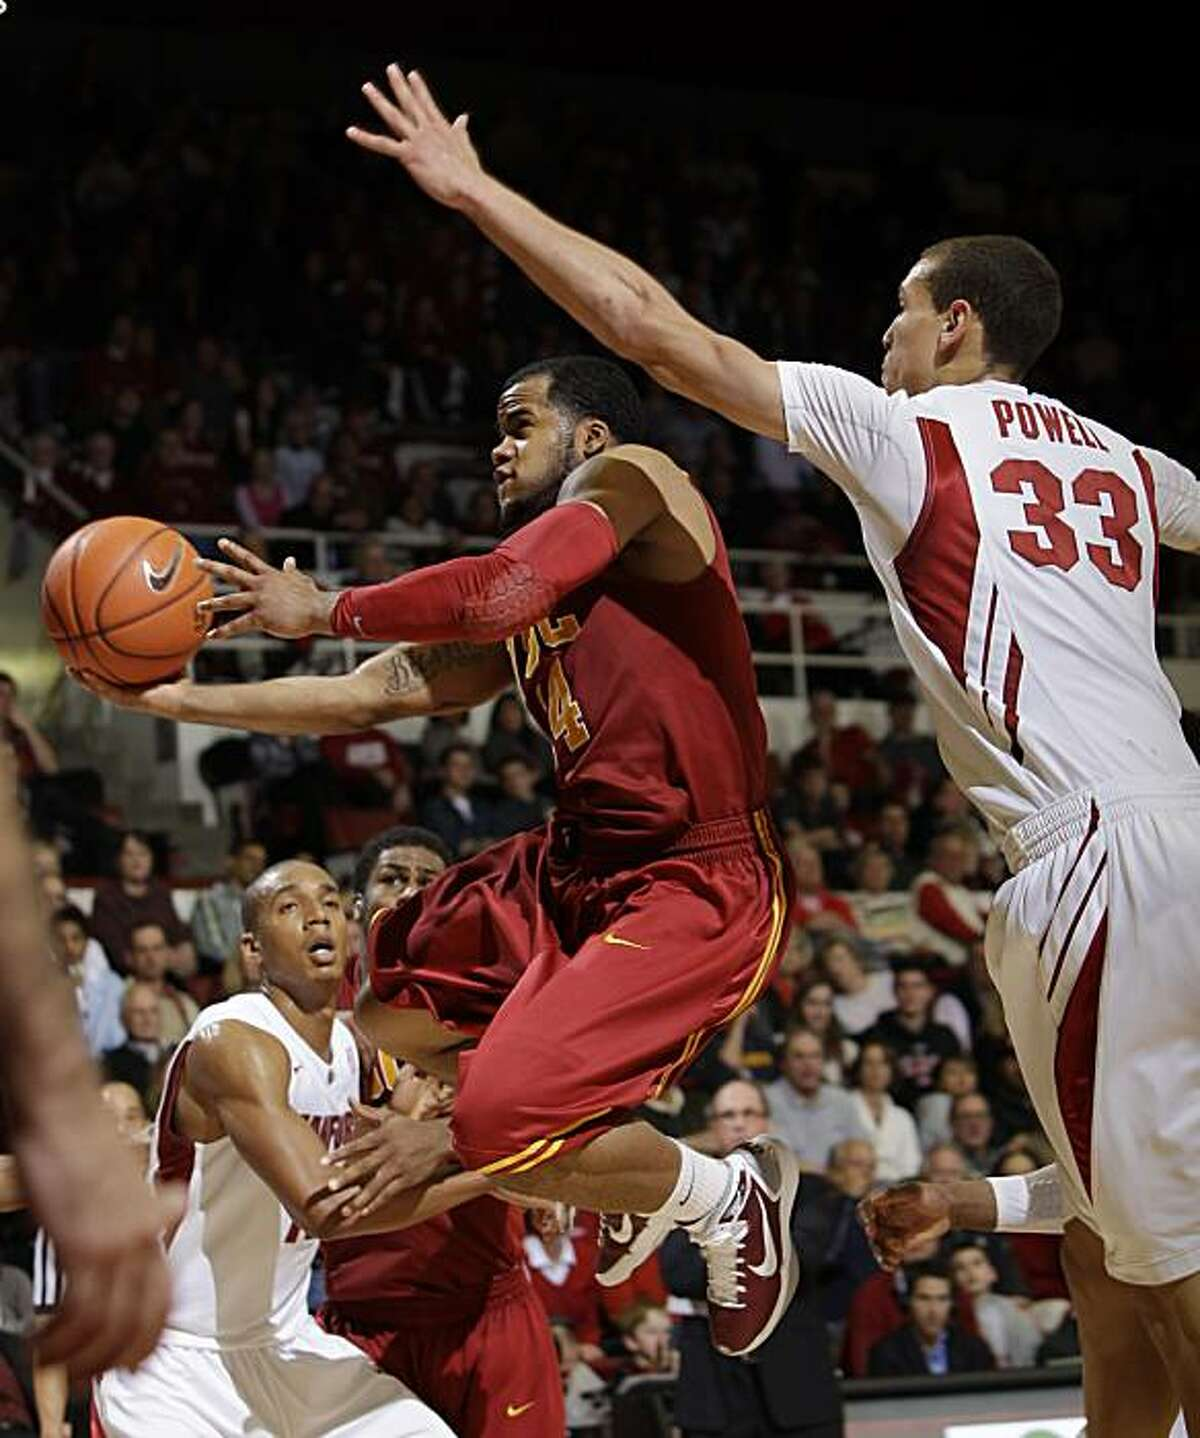 Southern California guard Donte Smith (14) scores in front of Stanford forward Dwight Powell (33) in the second half of an NCAA college basketball game in Stanford, Calif., Saturday, Feb. 19, 2011.